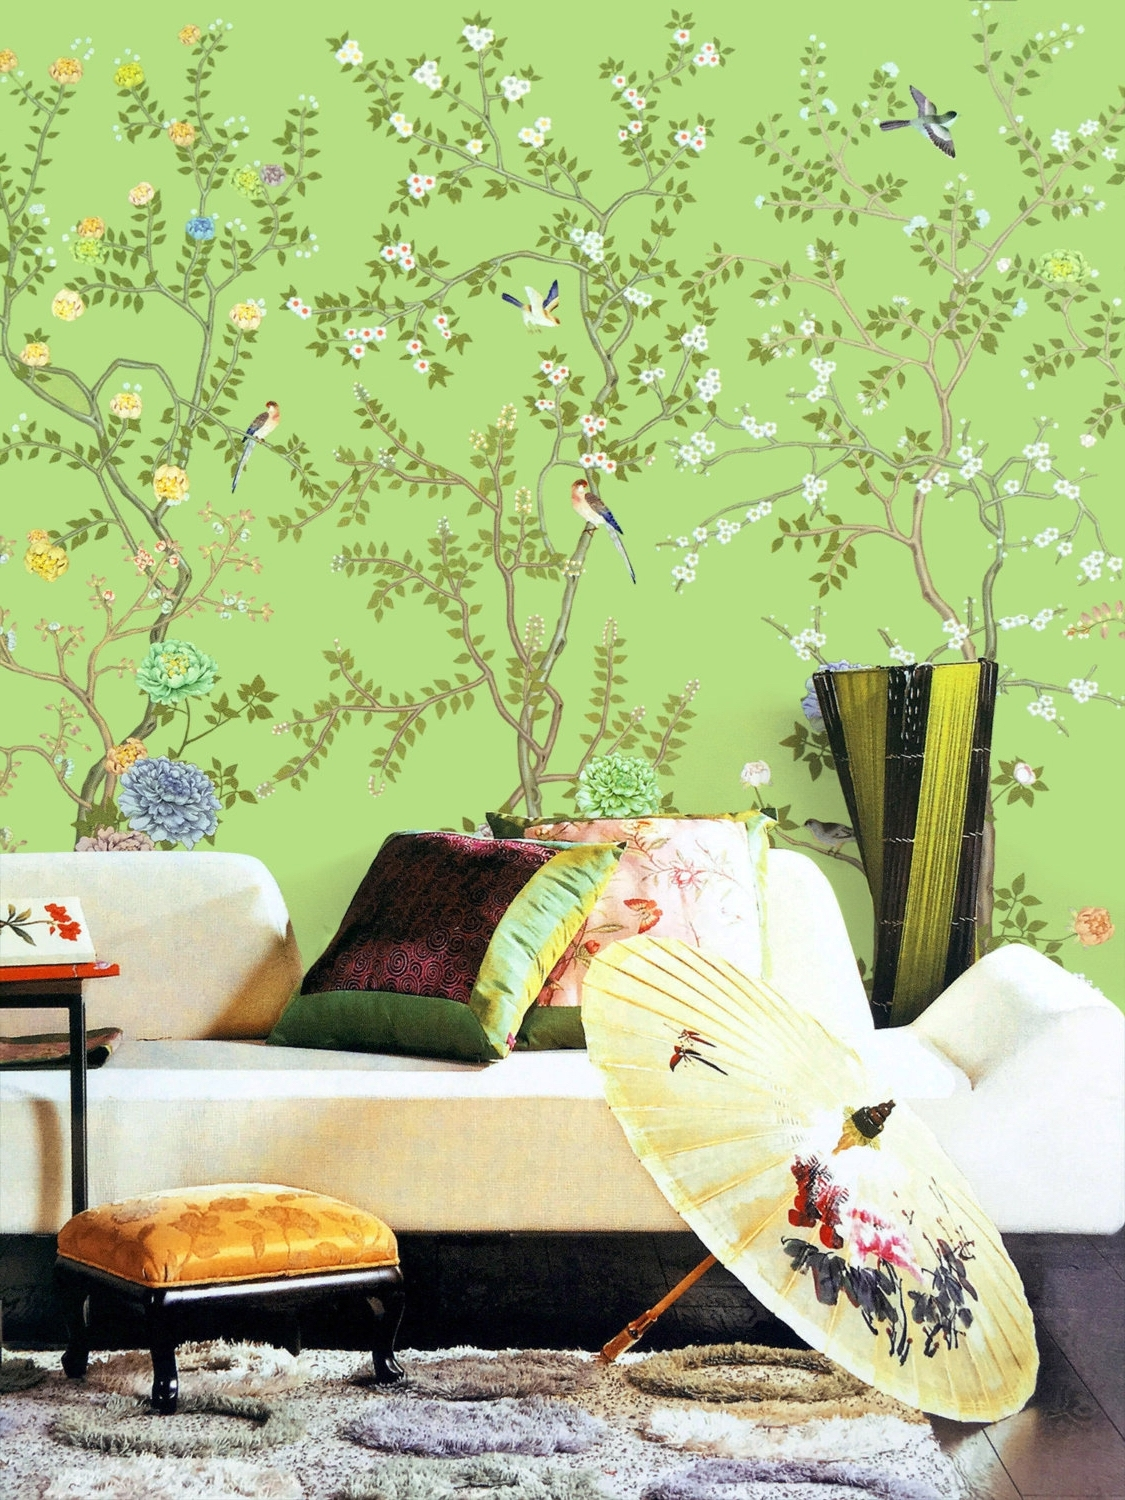 Lemon Green Chinoiserie Wallpaper Exotic Birds Trees Flowering Within Popular Chinoiserie Wall Art (View 11 of 15)